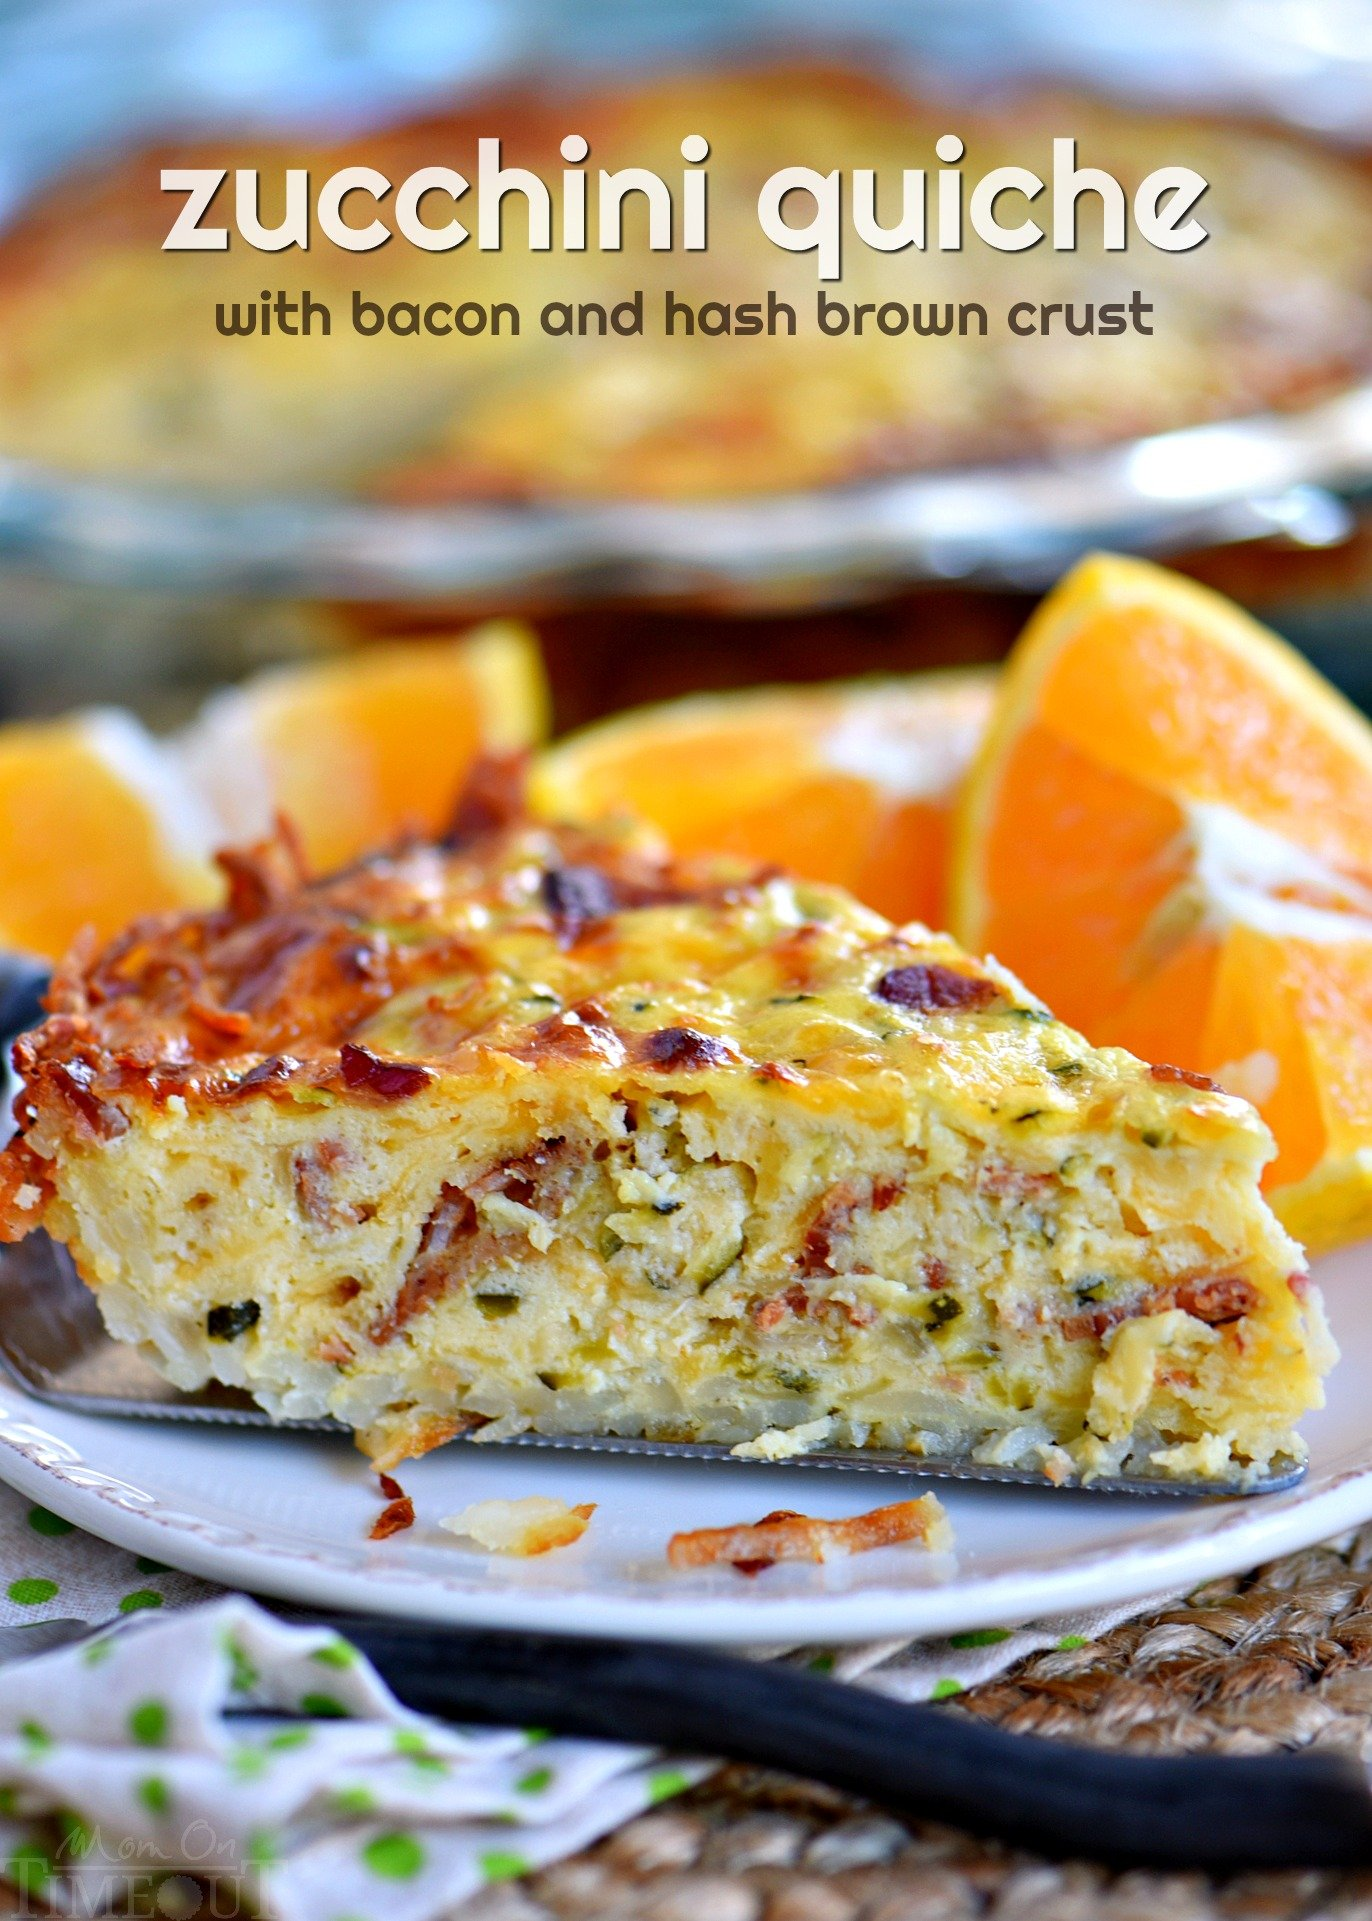 zucchini-quiche-bacon-hash-brown-crust